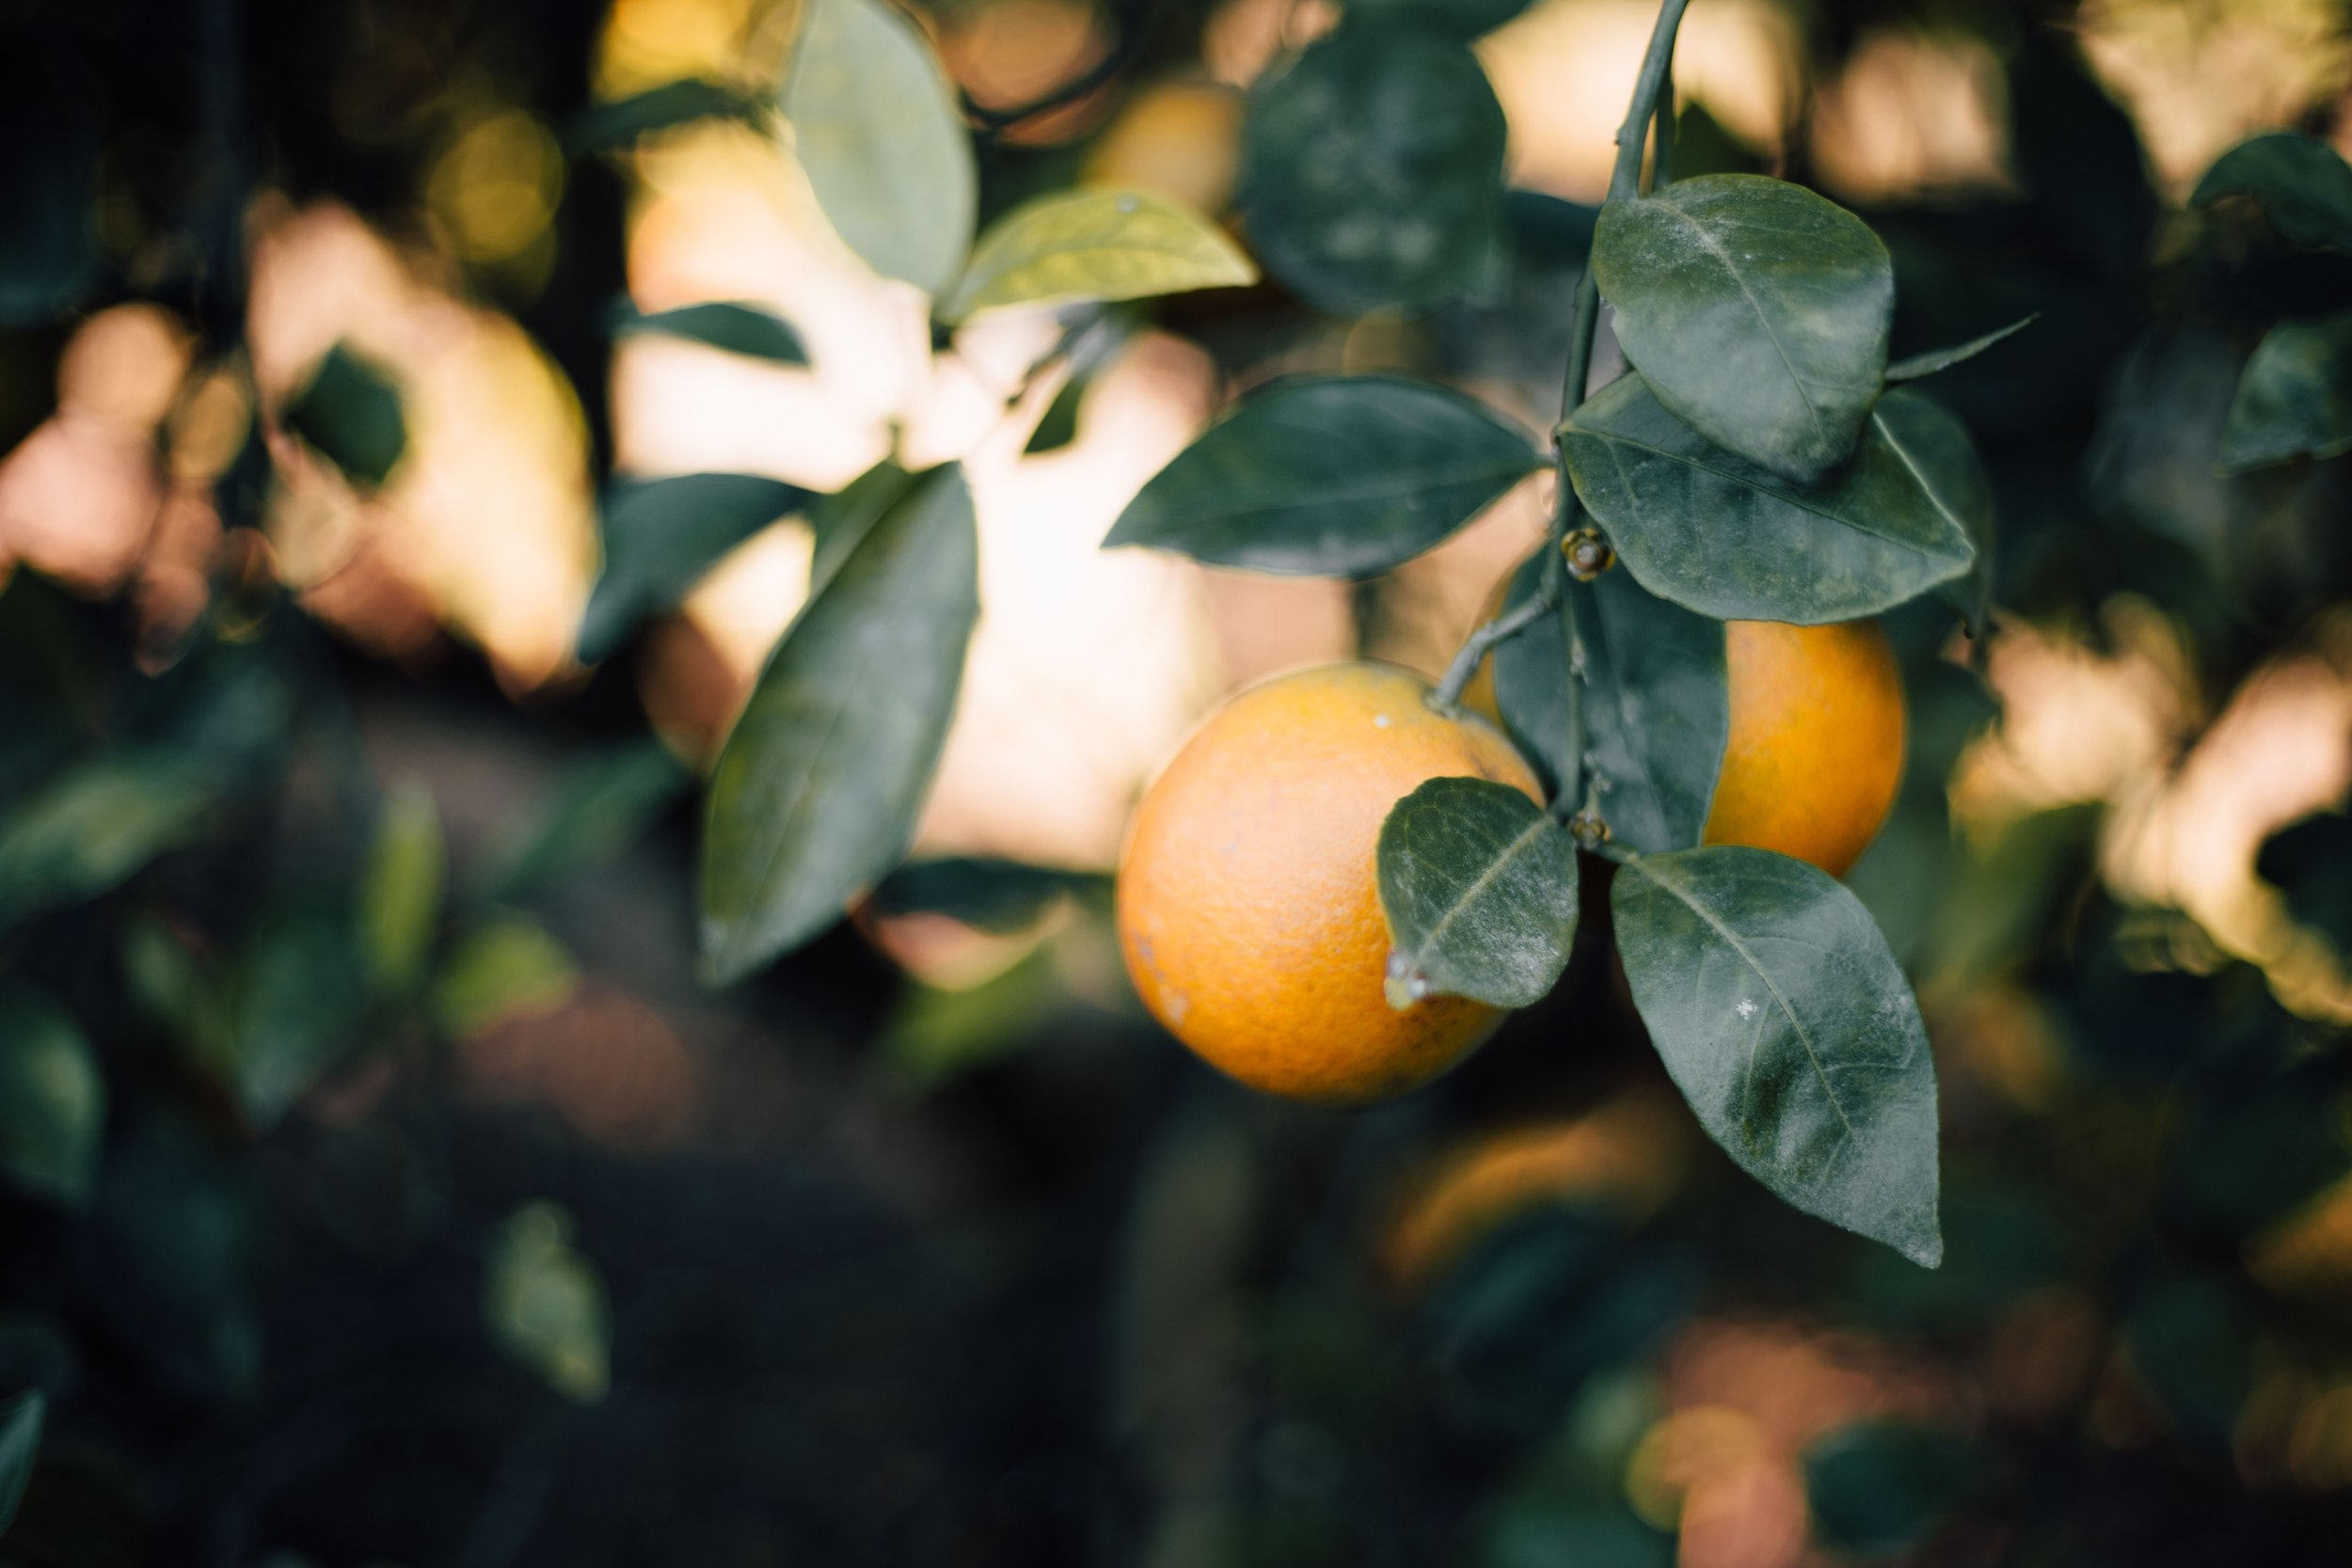 Annie Shelmerdine via UnSplash